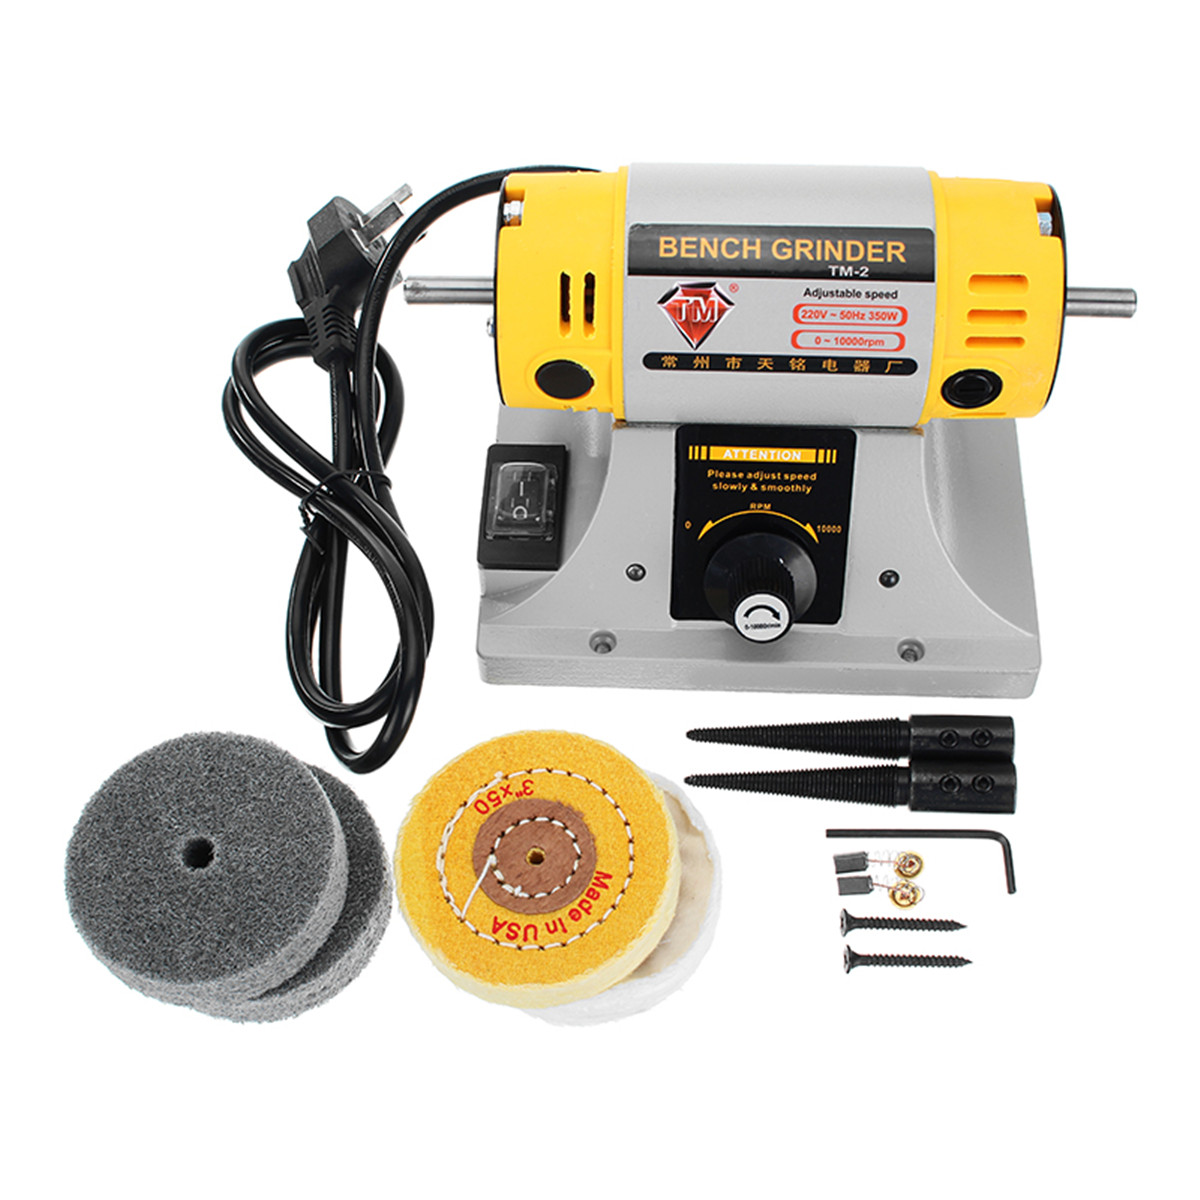 Marvelous 220V Adjustable Speed Mini Polishing Machine For Dental Jewelry Motor Lathe Bench Grinder Kit Gmtry Best Dining Table And Chair Ideas Images Gmtryco